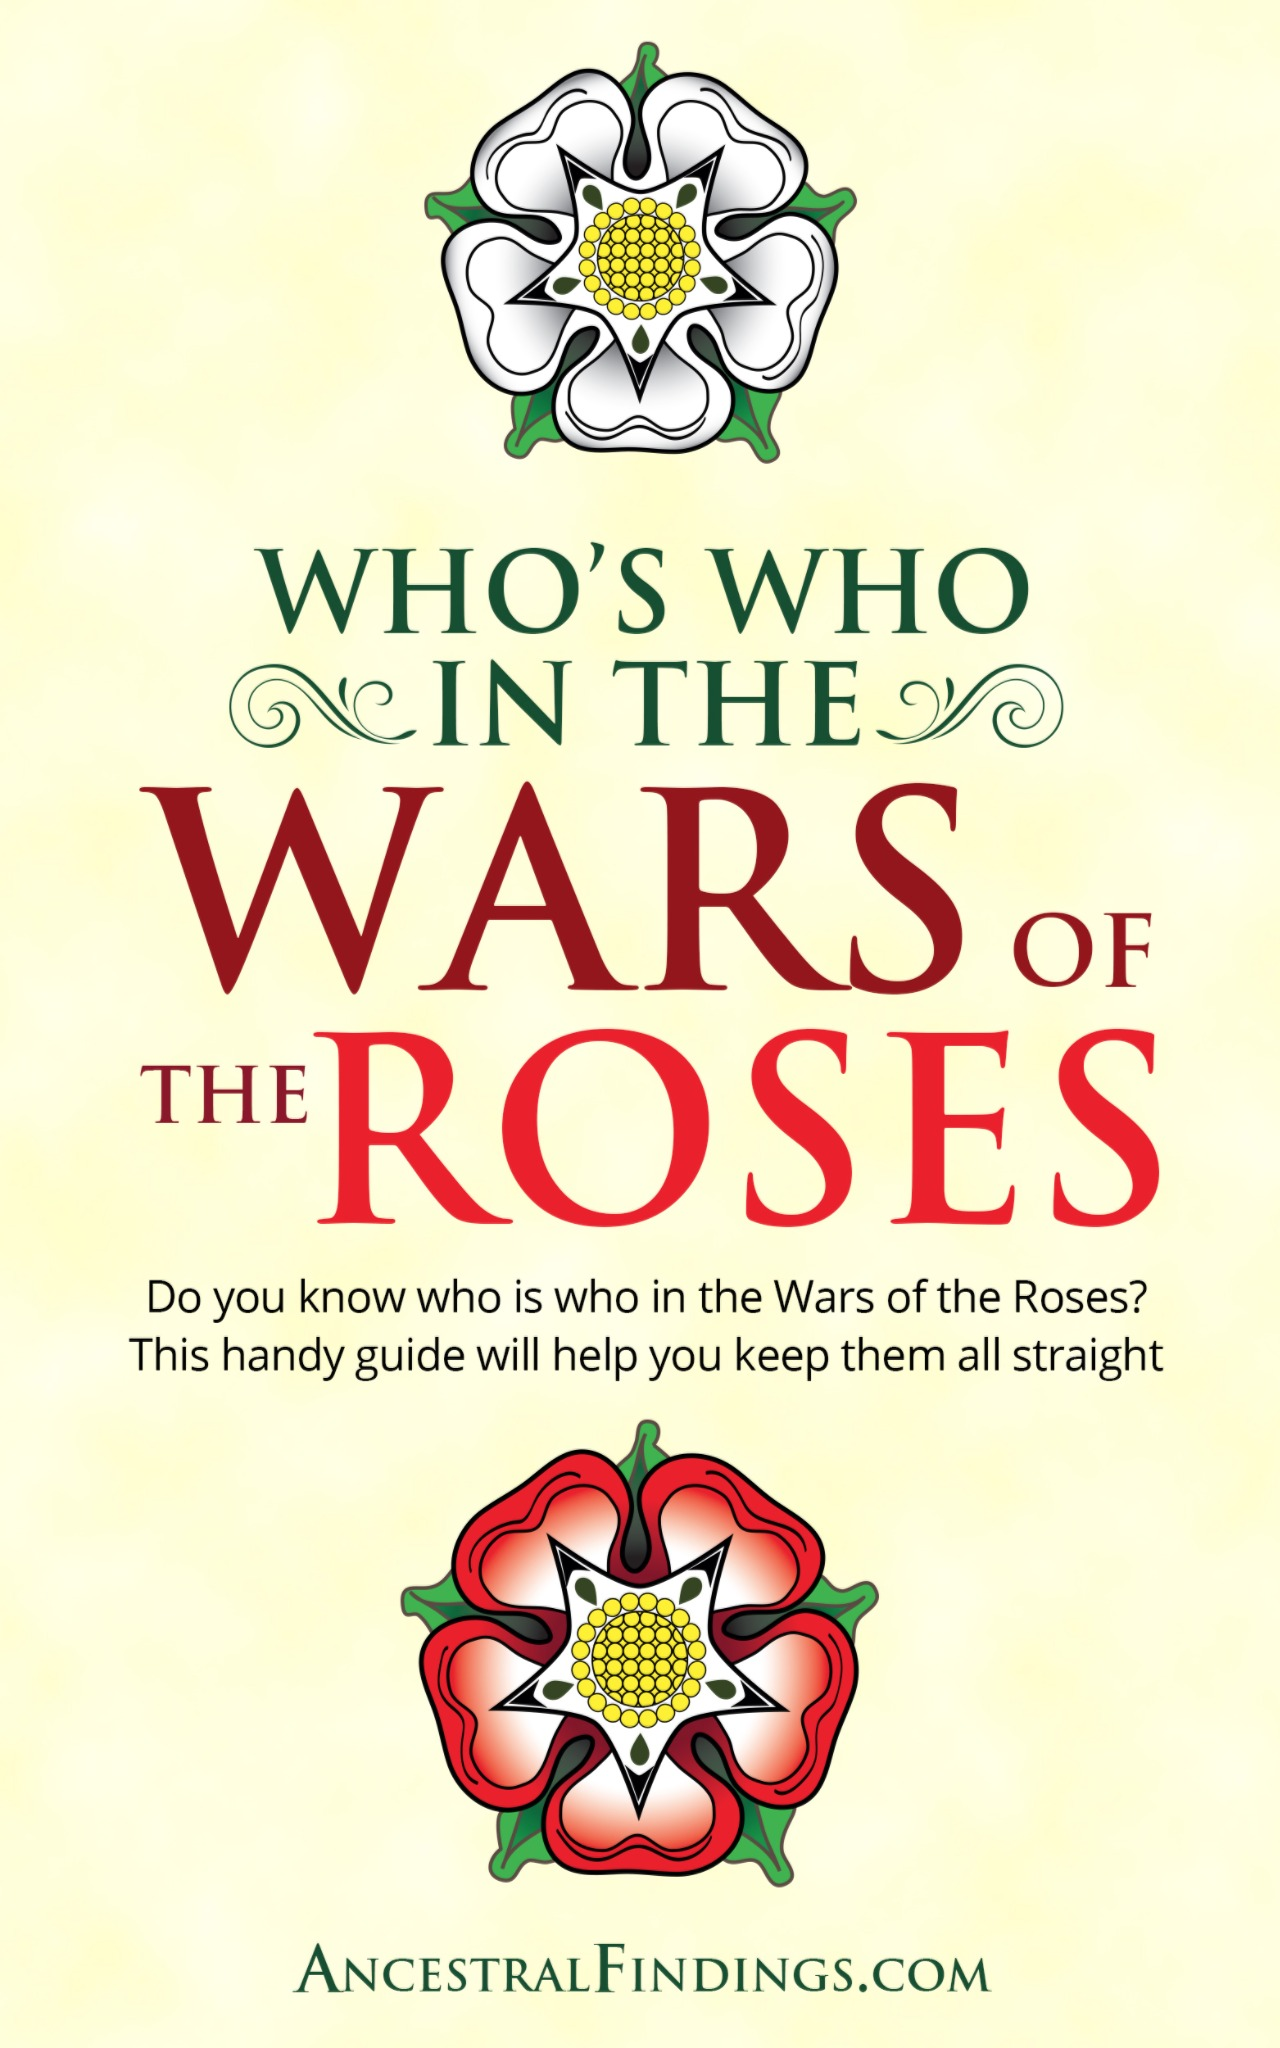 Who's Who in the Wars of the Roses